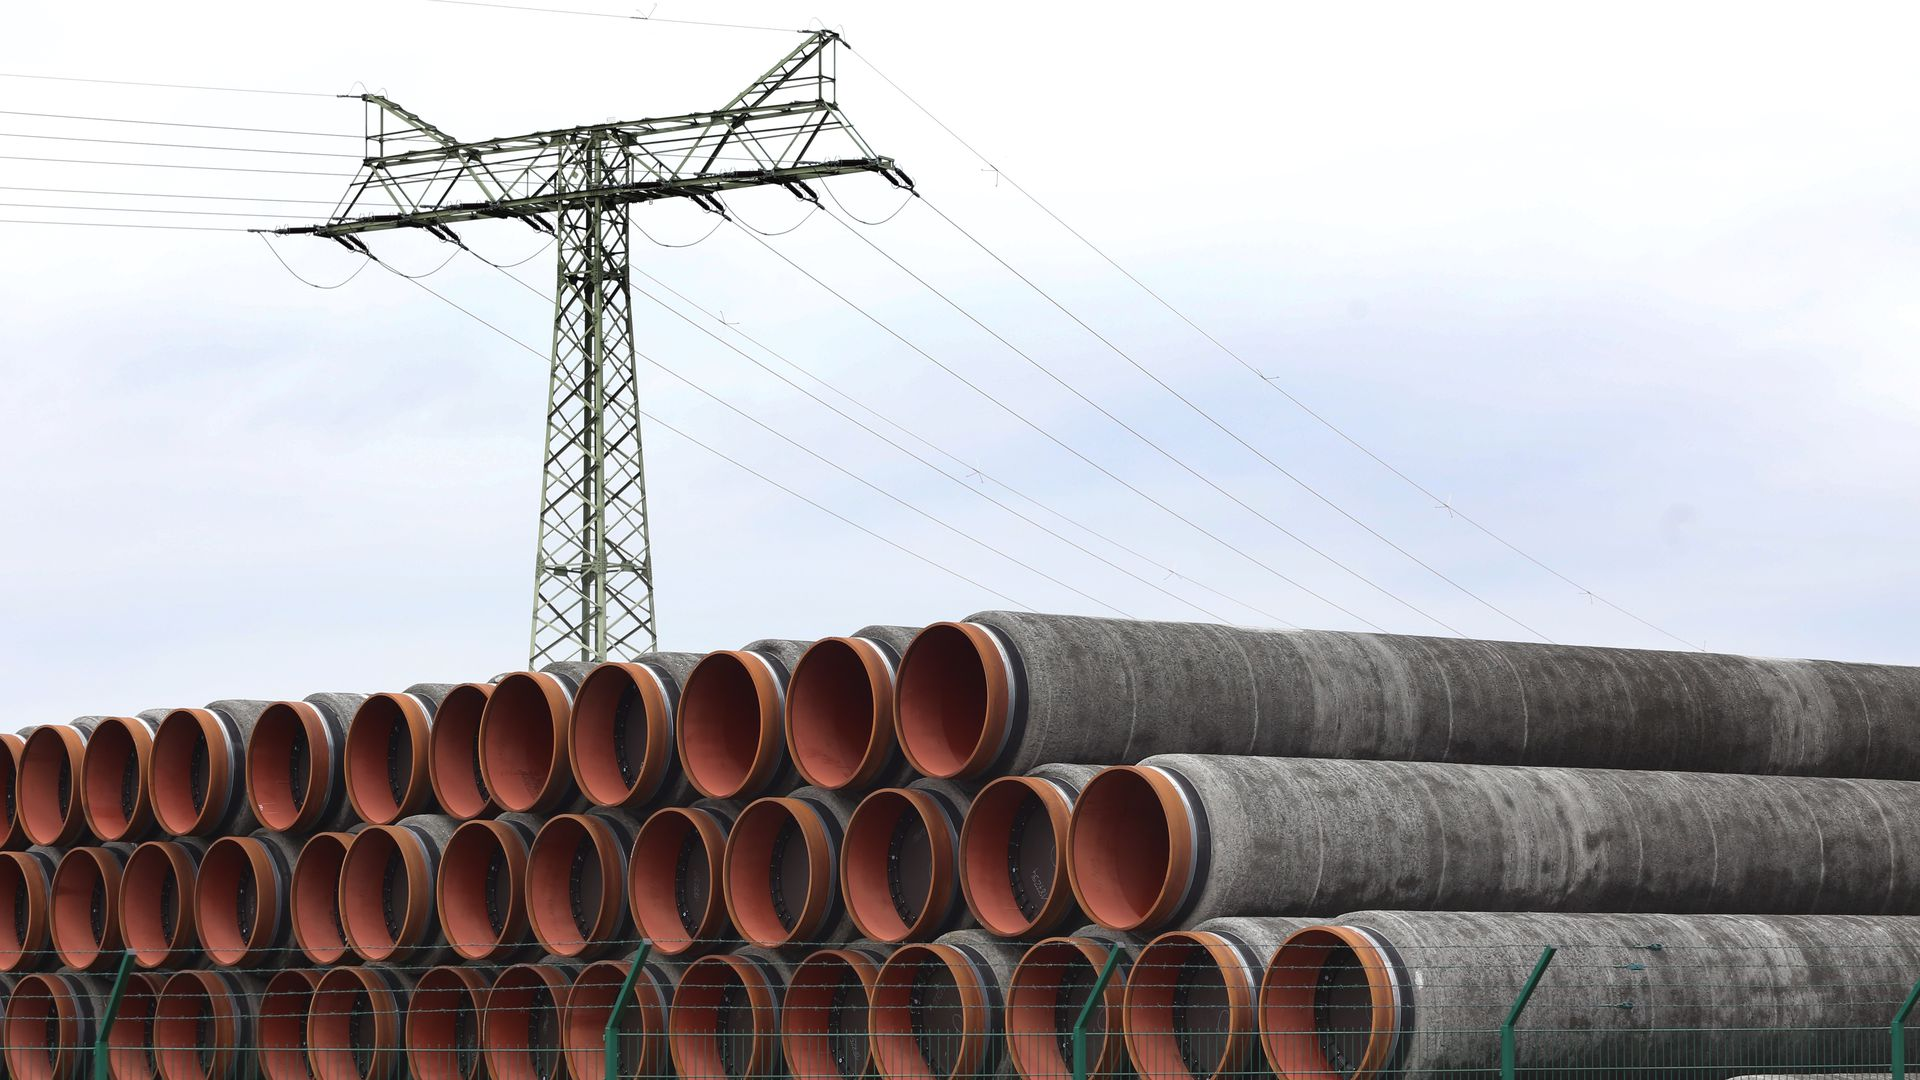 Pipes for the Nord Stream 2 natural gas pipeline are ready for collection at the port.